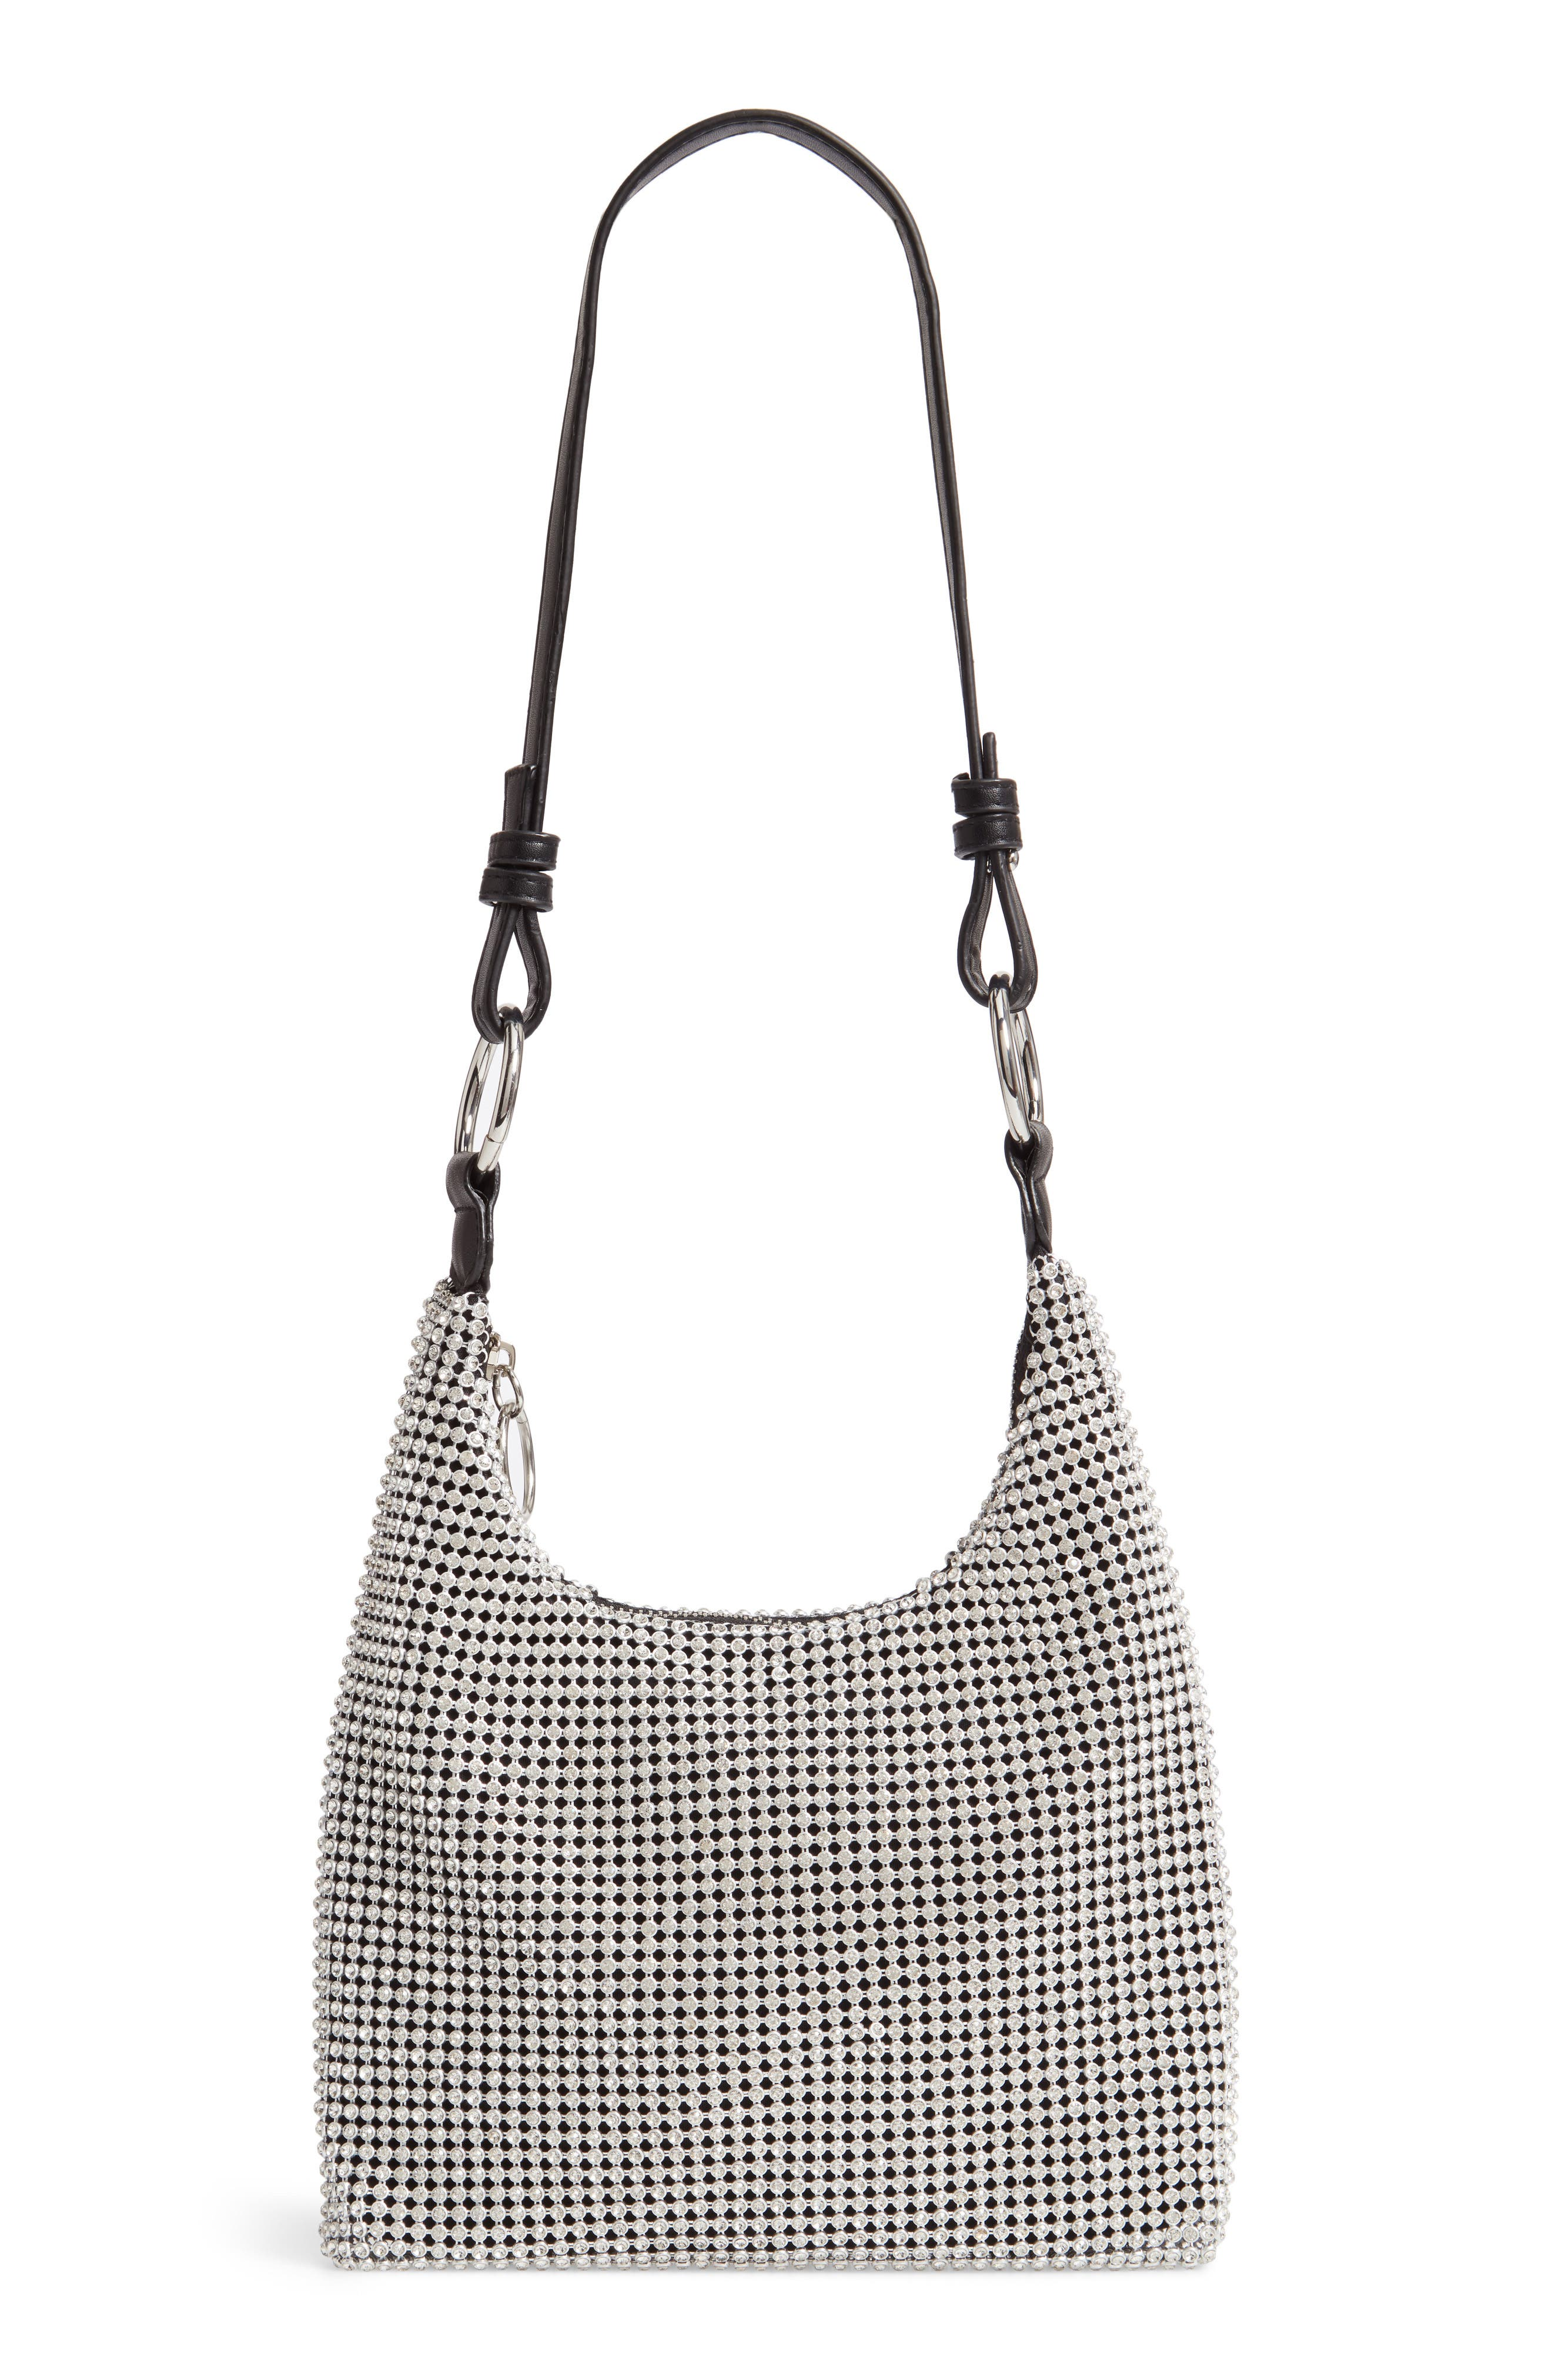 Topshop New Accessories For Women Handbags Jewelry More Nordstrom Ready Nwt Maya Hobo Brown